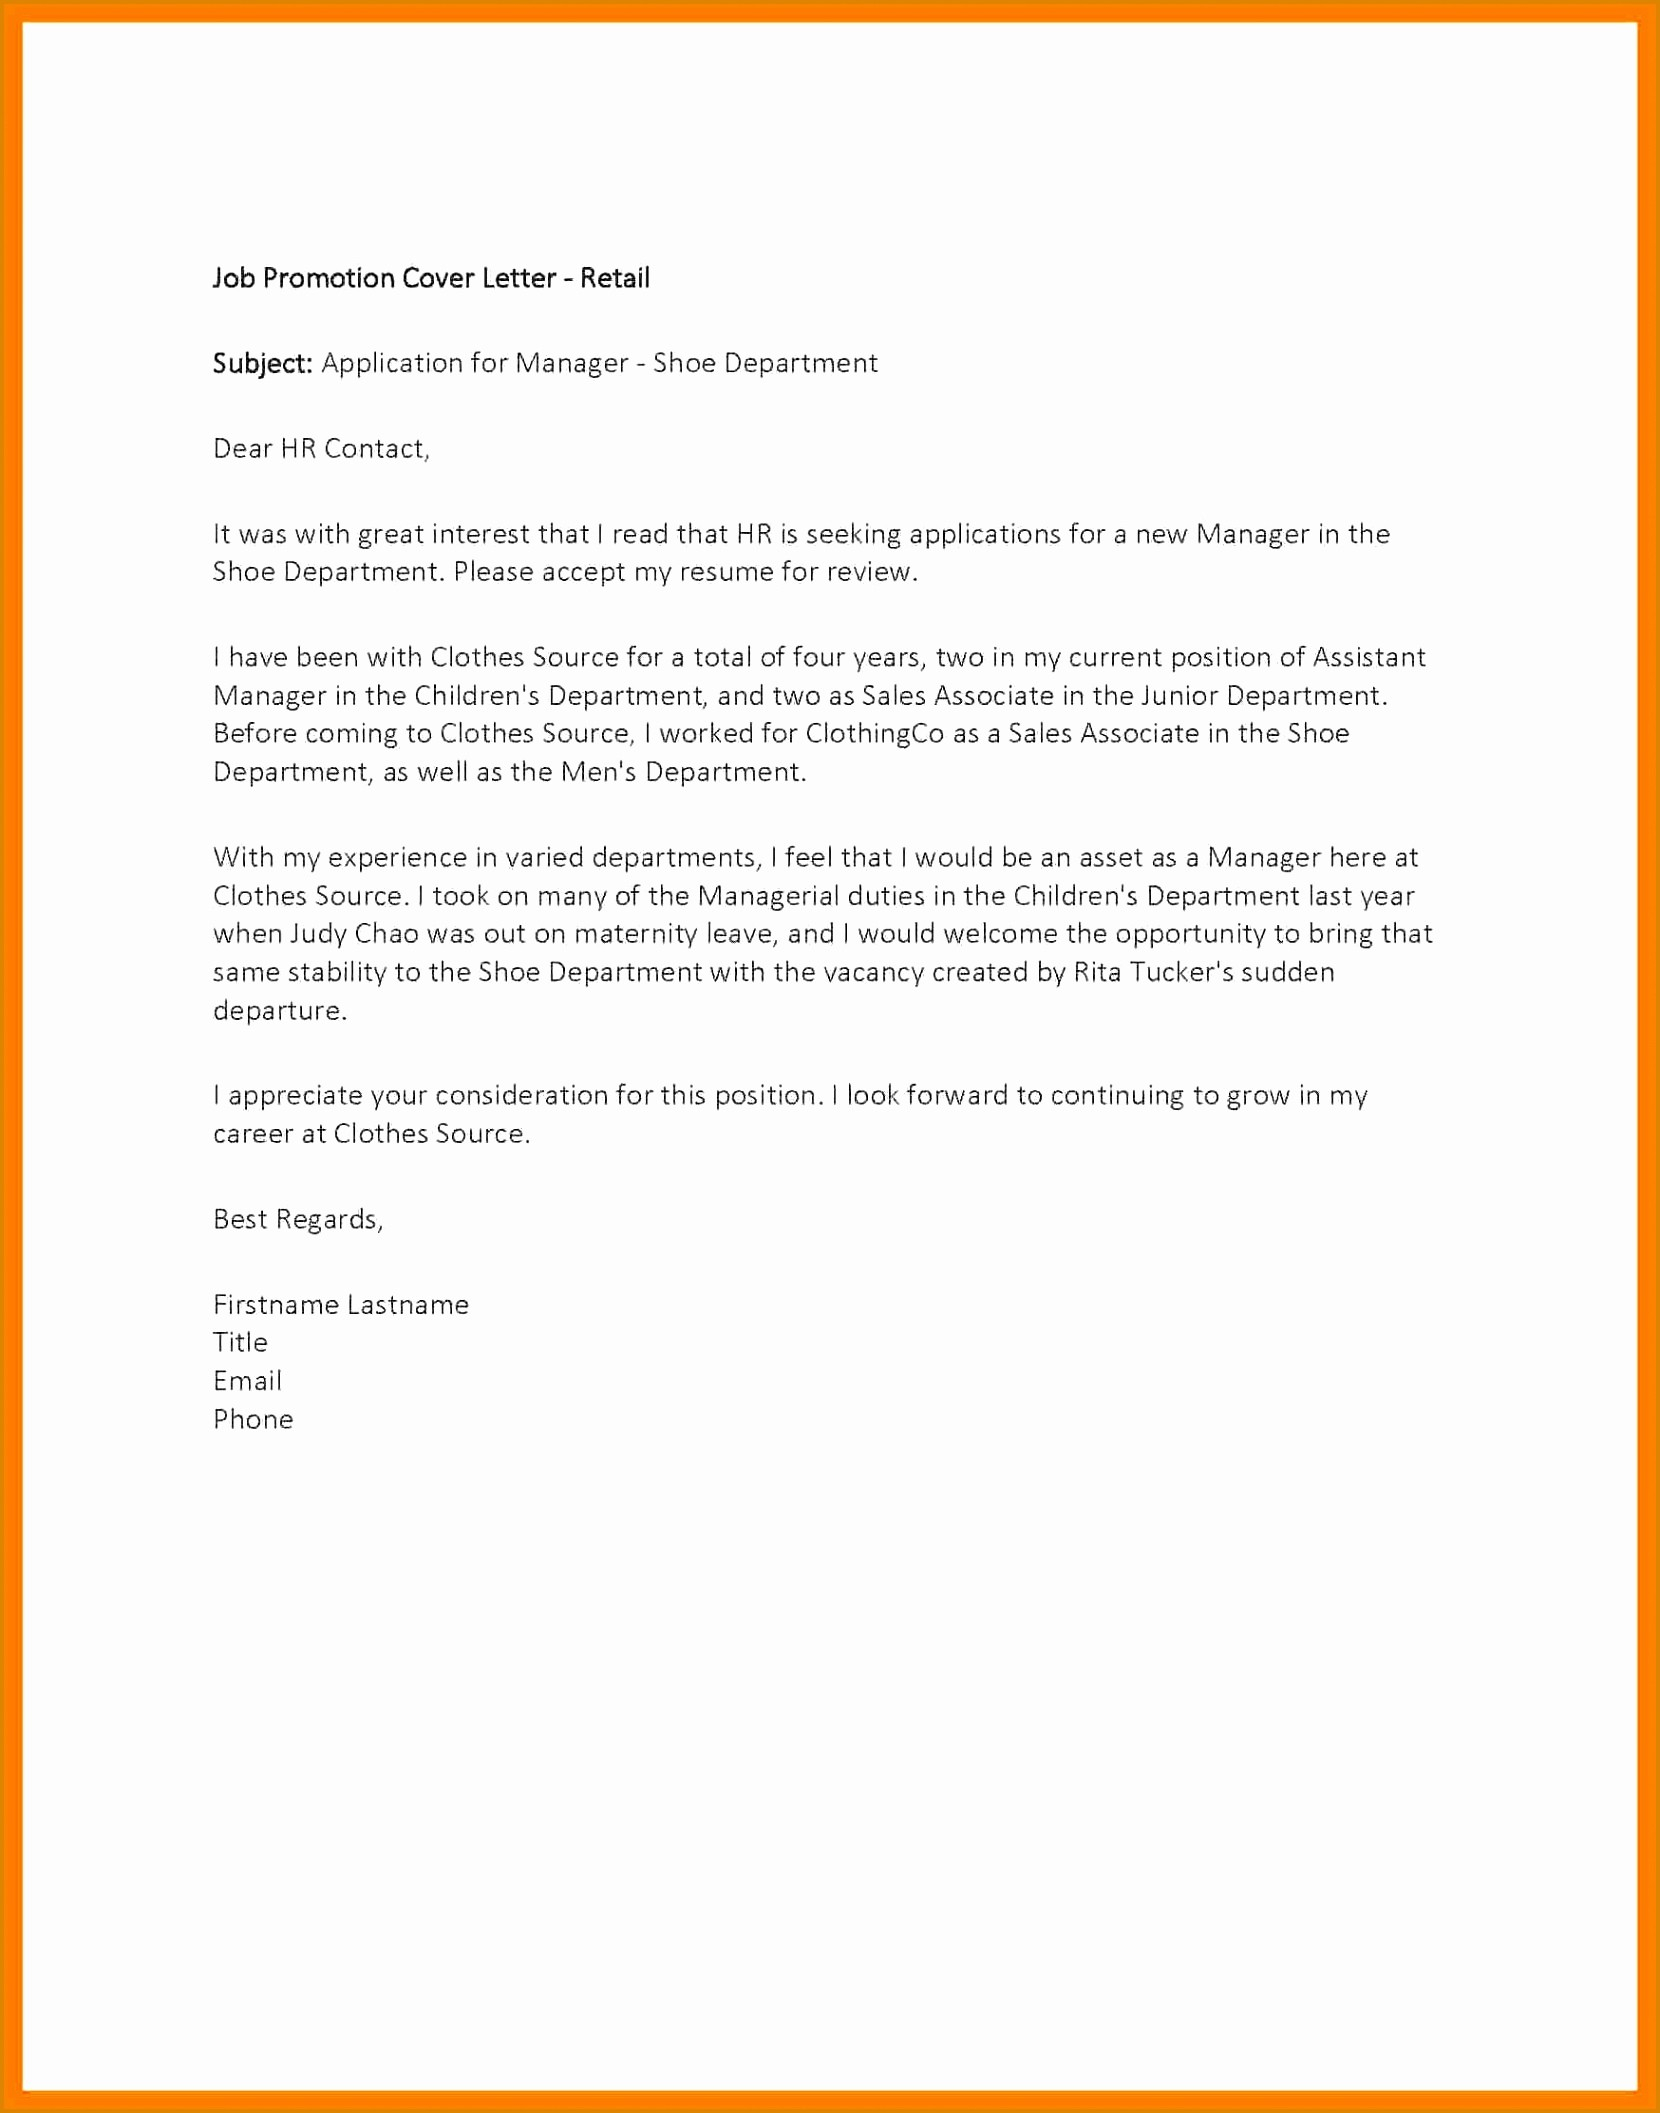 Cover Letter Template Retail Sales assistant Samples | Letter Templates